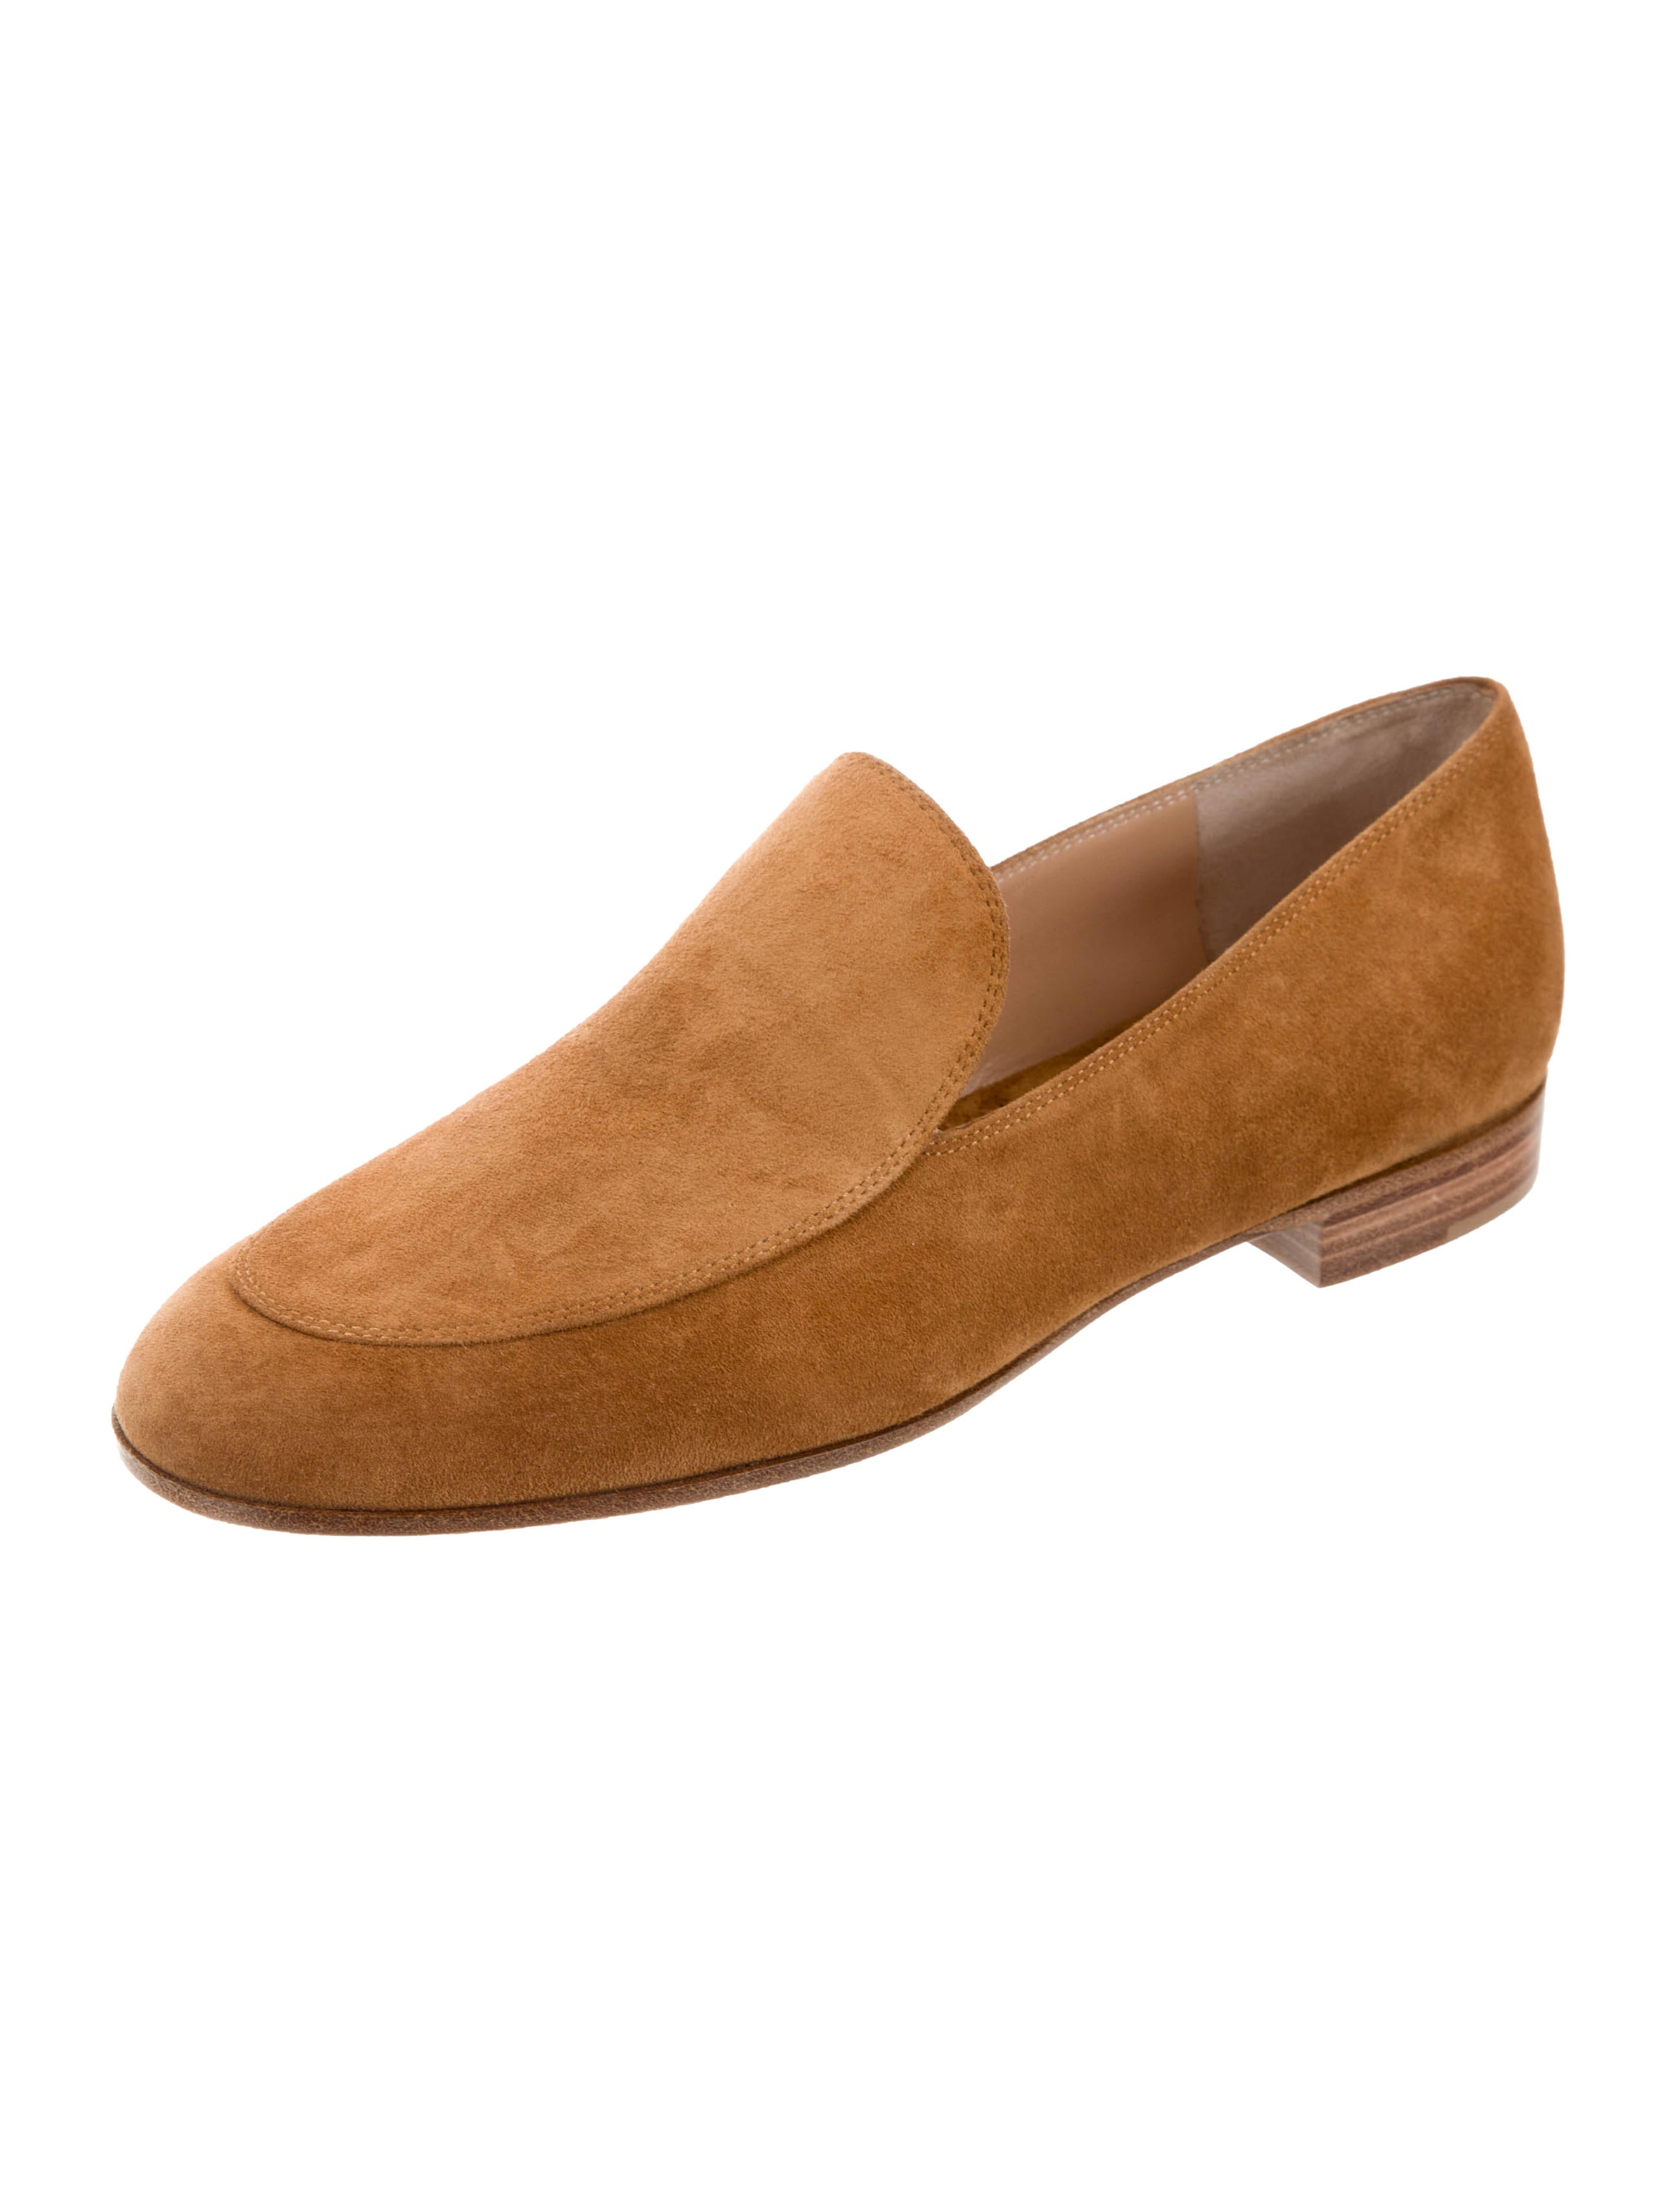 Gianvito Rossi Marcel Suede Loafers w/ Tags exclusive cheap online 2014 cheap online buy cheap lowest price 61AR7